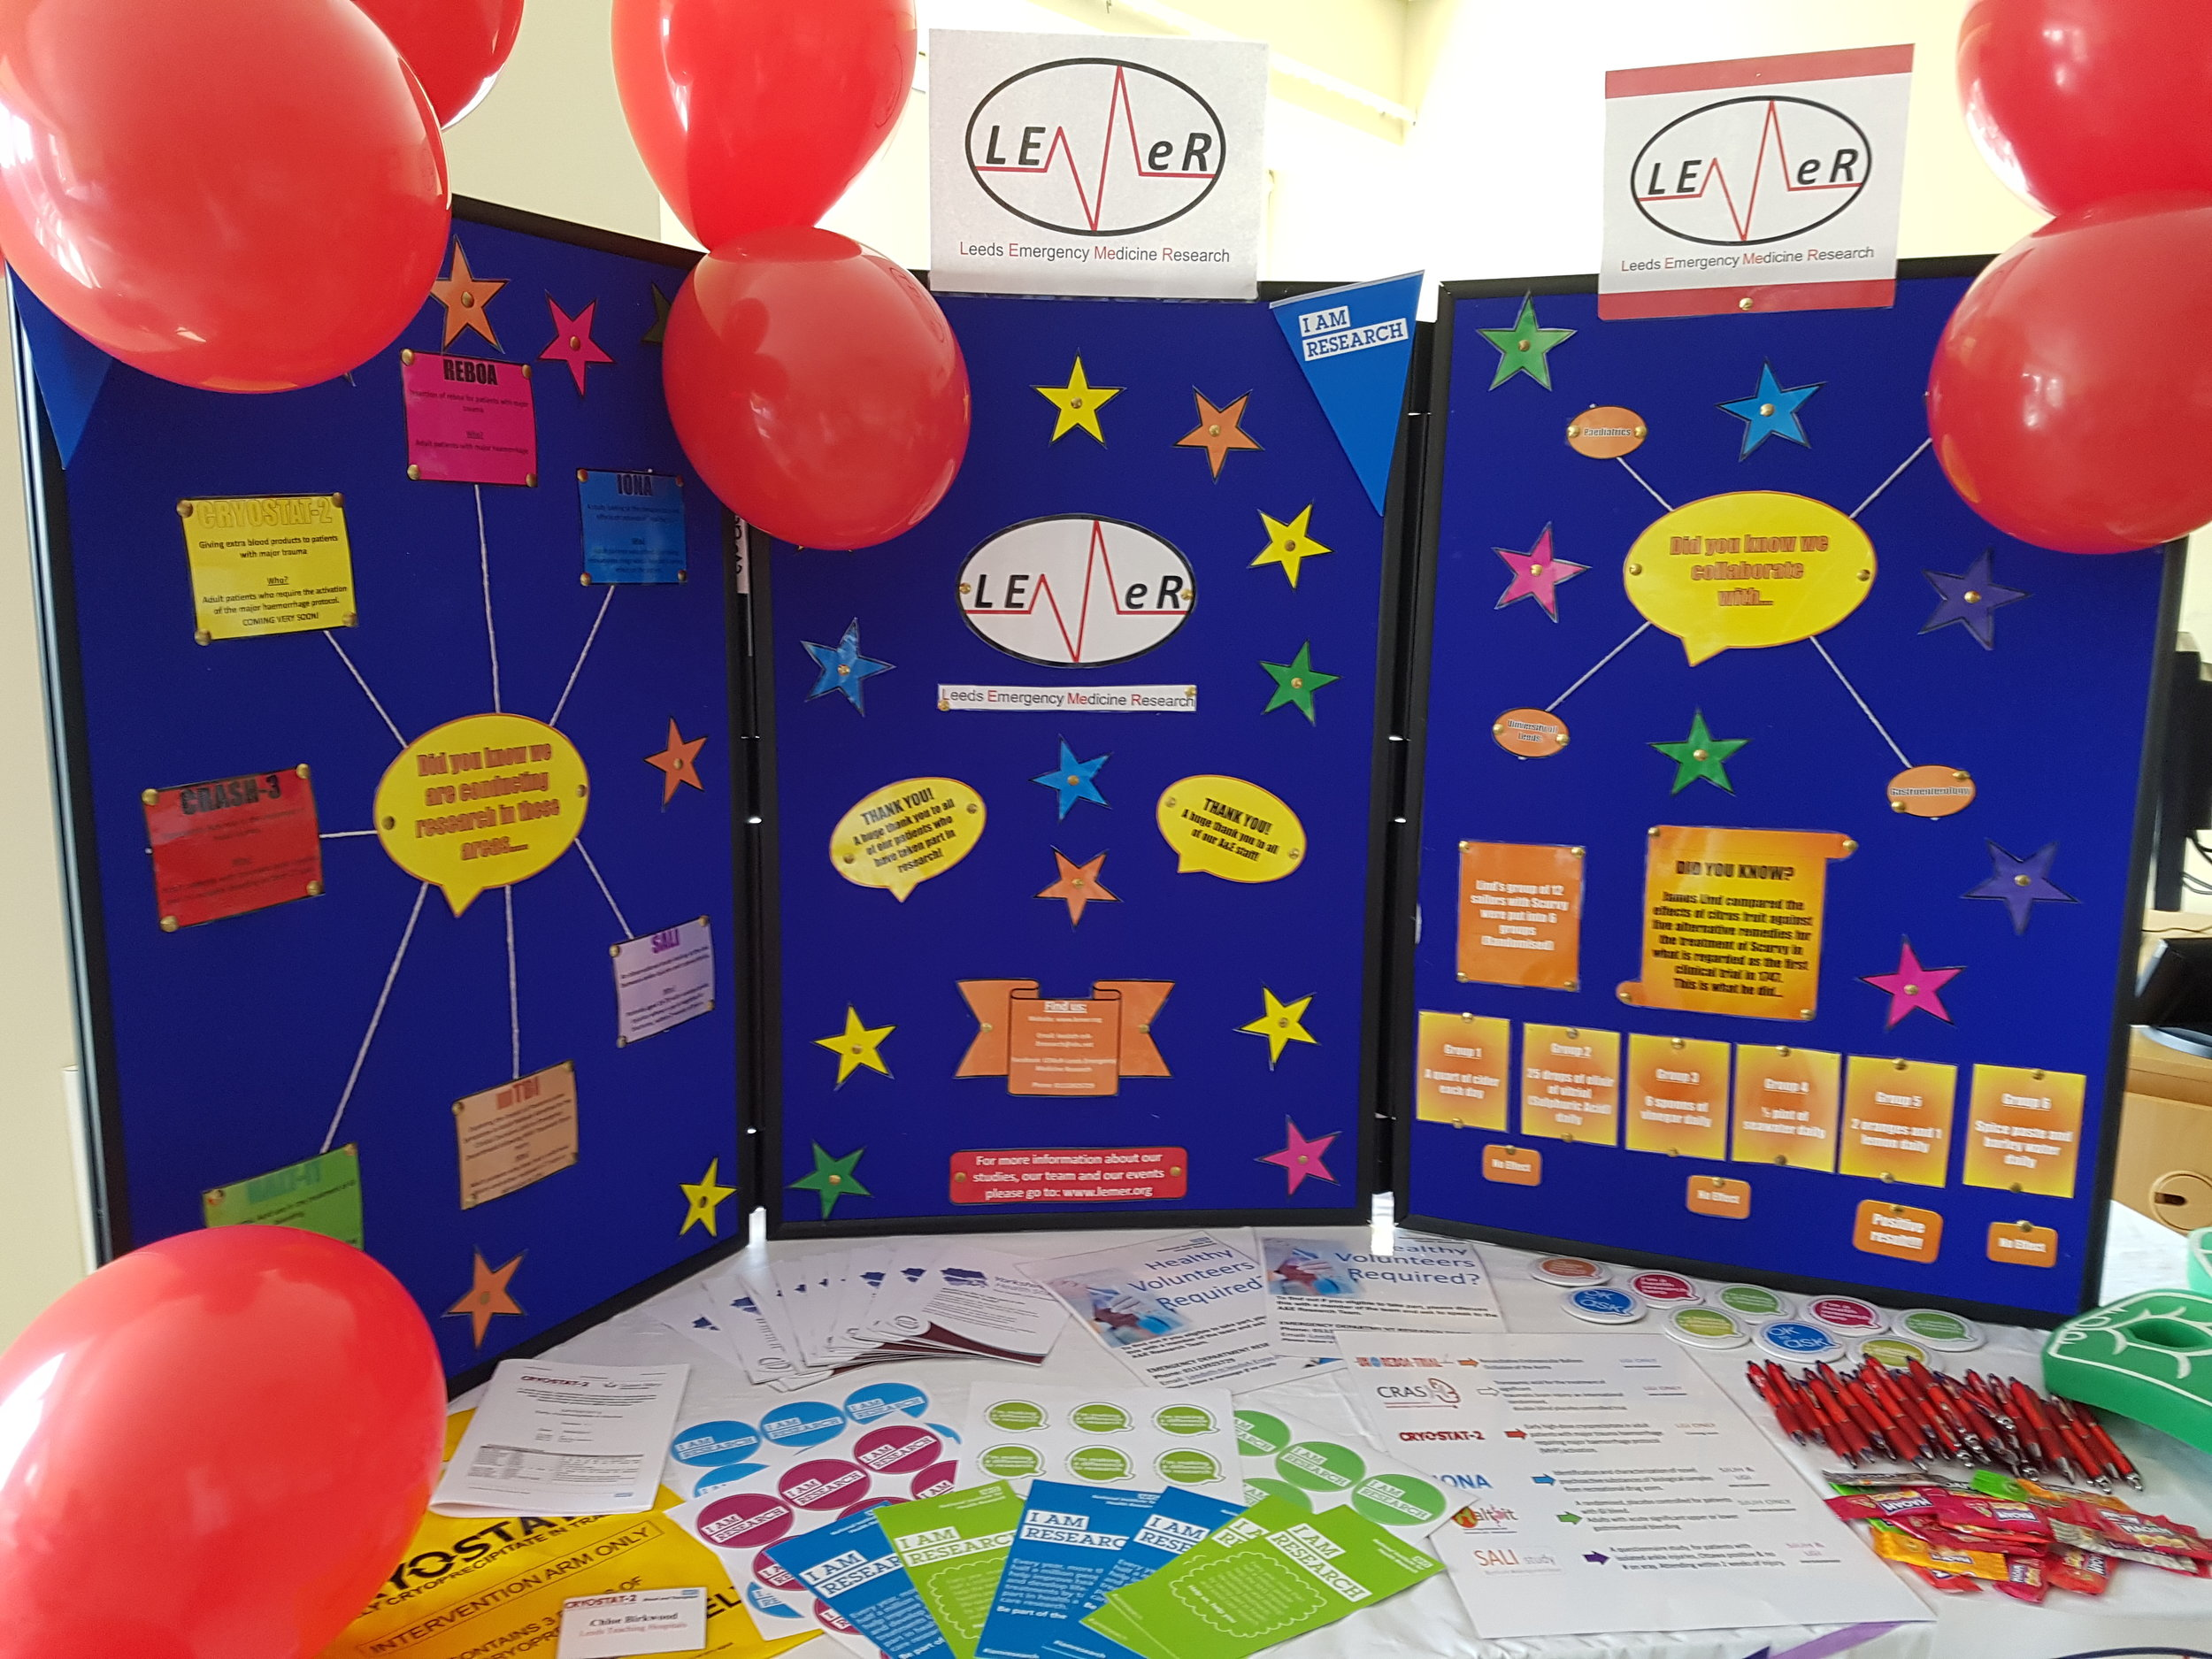 International Clinical Trials Day 2018 Stand